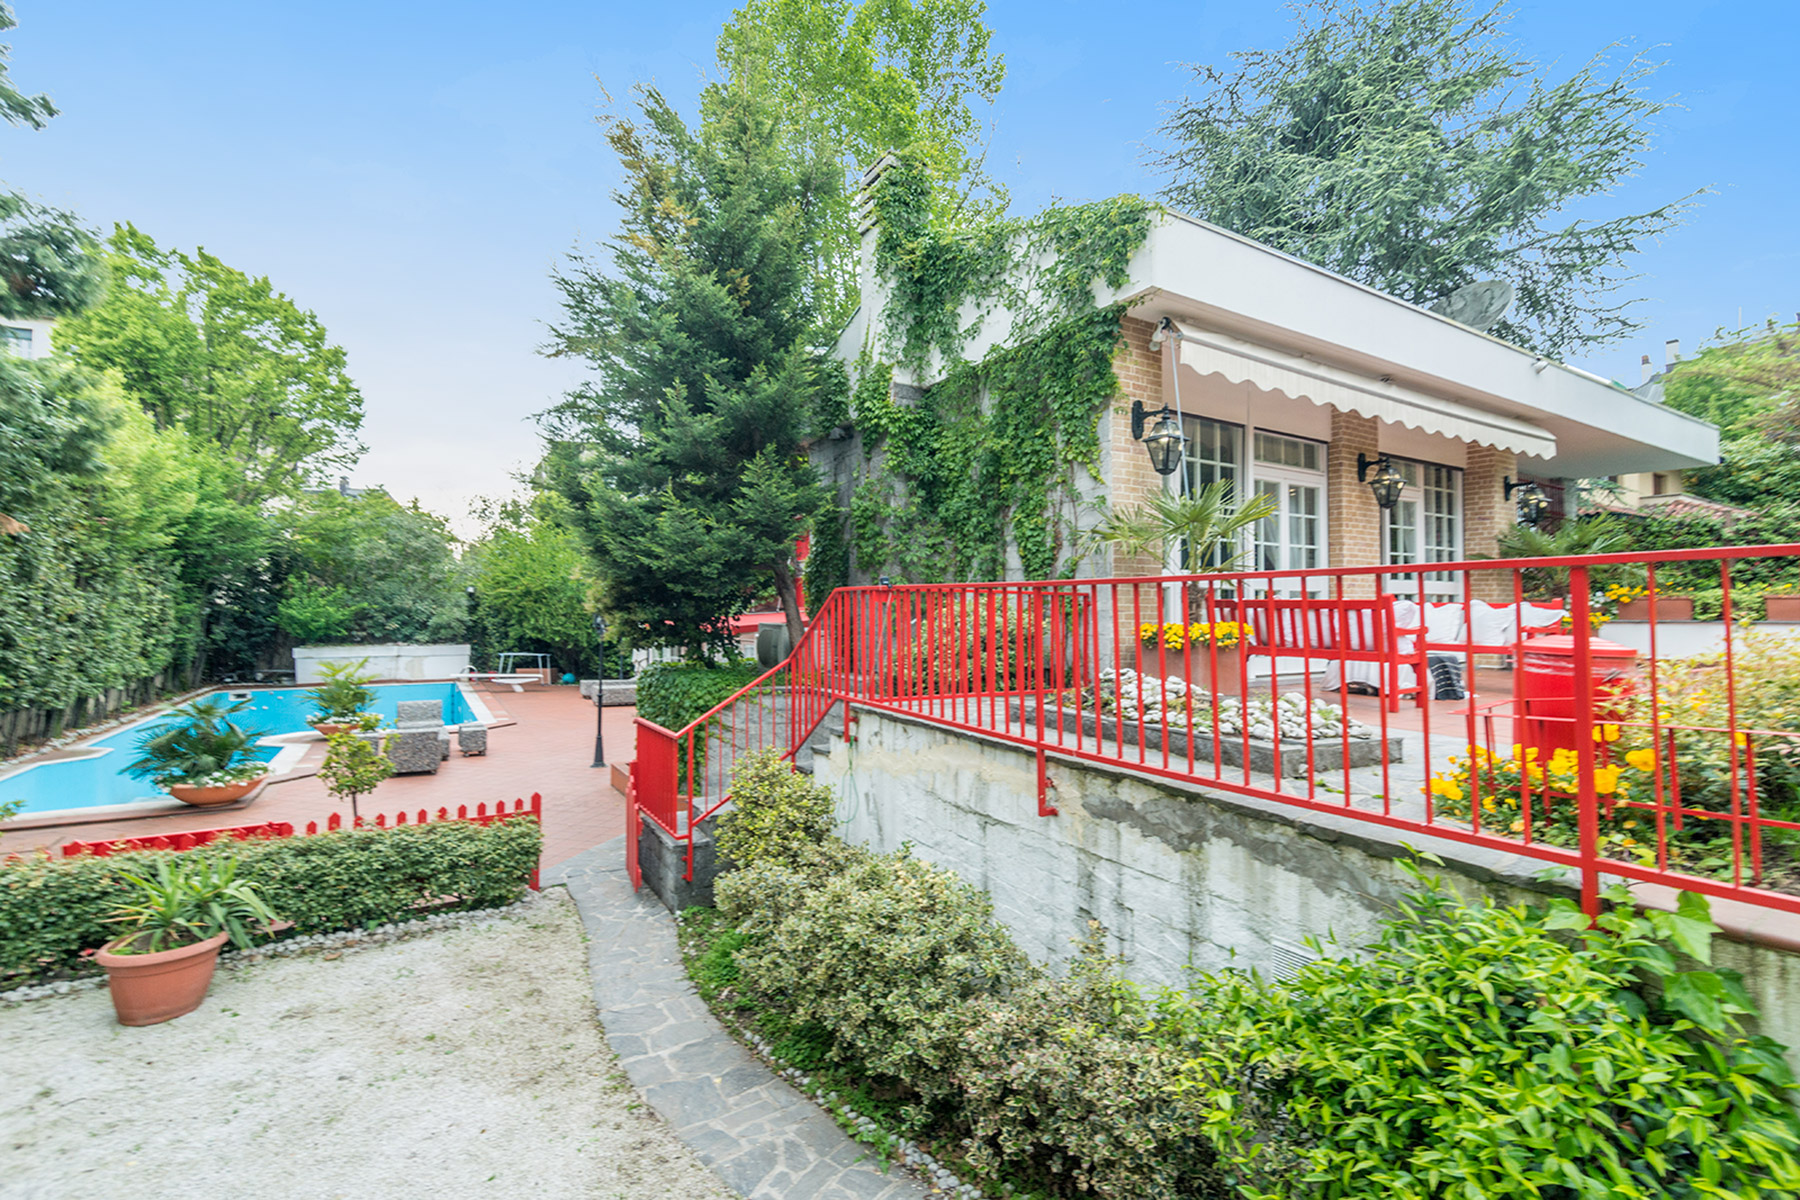 Additional photo for property listing at Refined villa with private garden and swimming pool Via Palatino Milano, Milan 20100 Italien